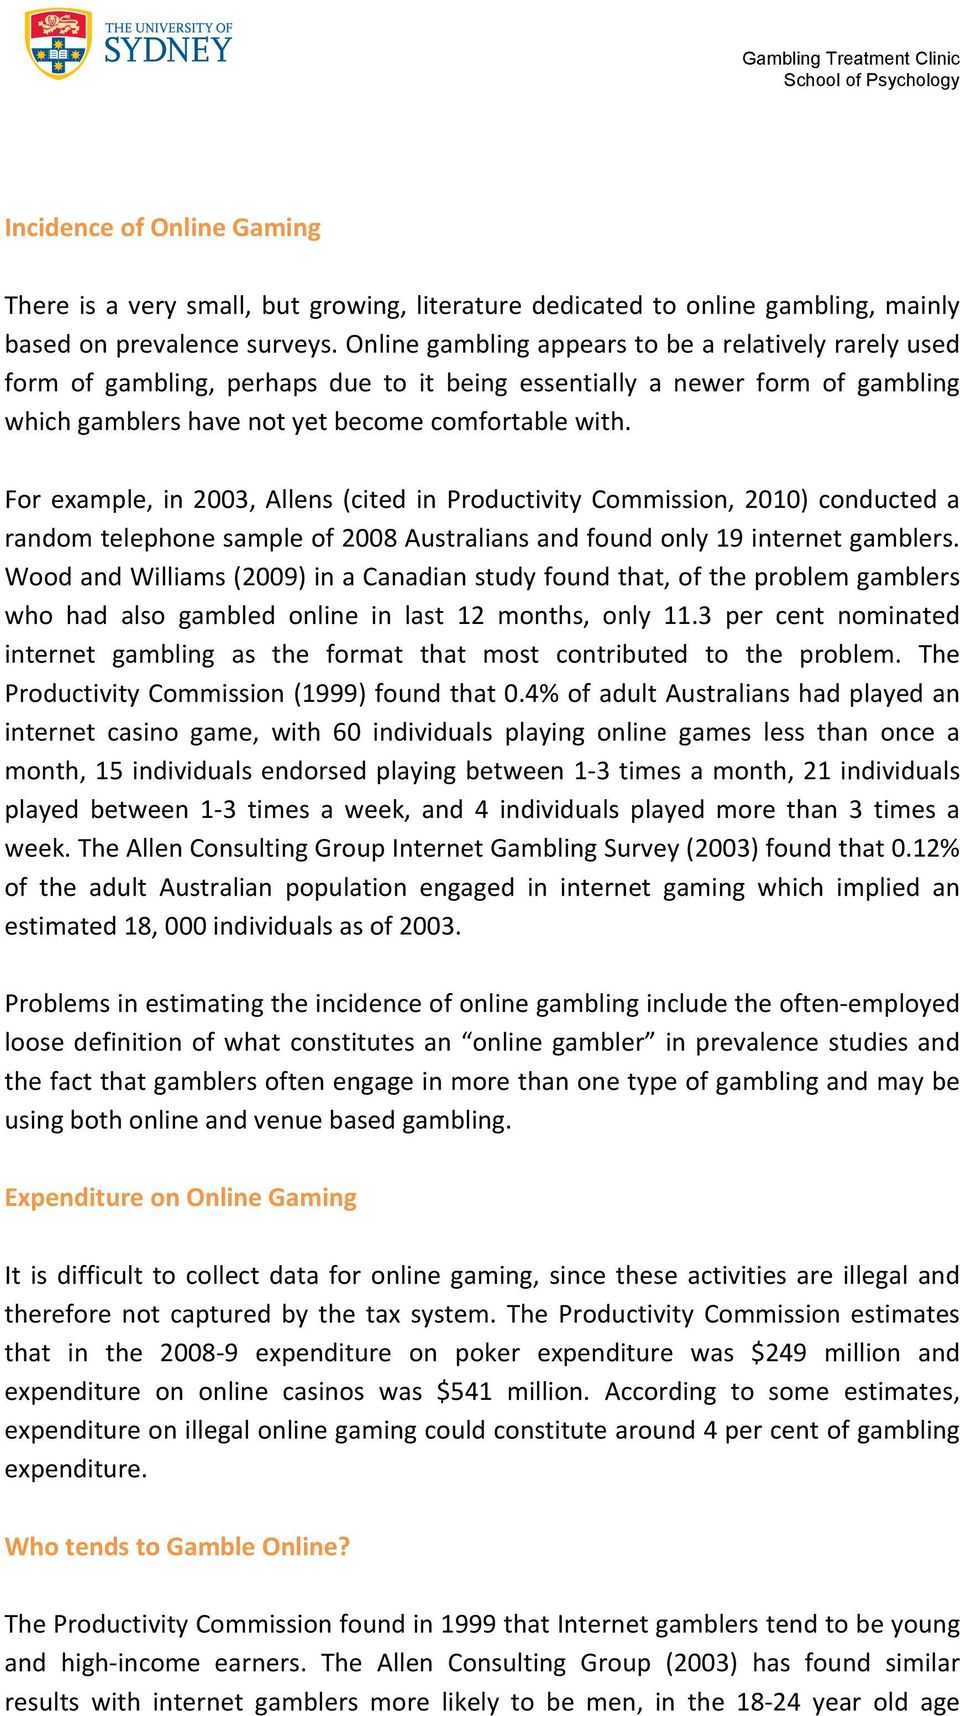 For example, in 2003, Allens (cited in Productivity Commission, 2010) conducted a random telephone sample of 2008 Australians and found only 19 internet gamblers.